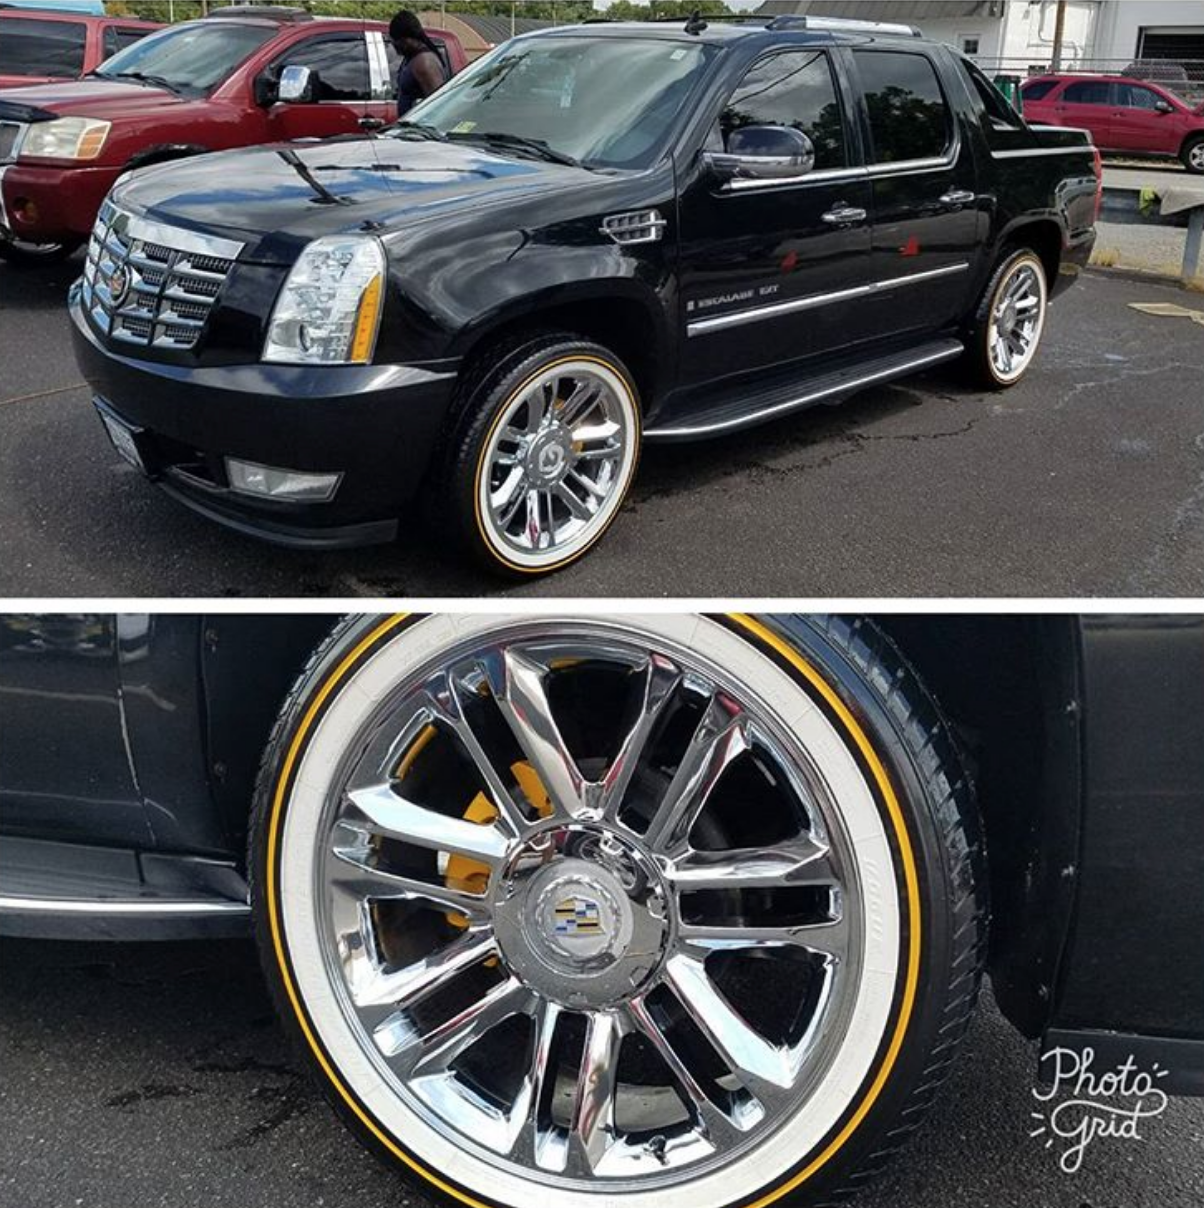 22 Inch Vogue Tyres On This Clean Escalade Ext Nice Tyres